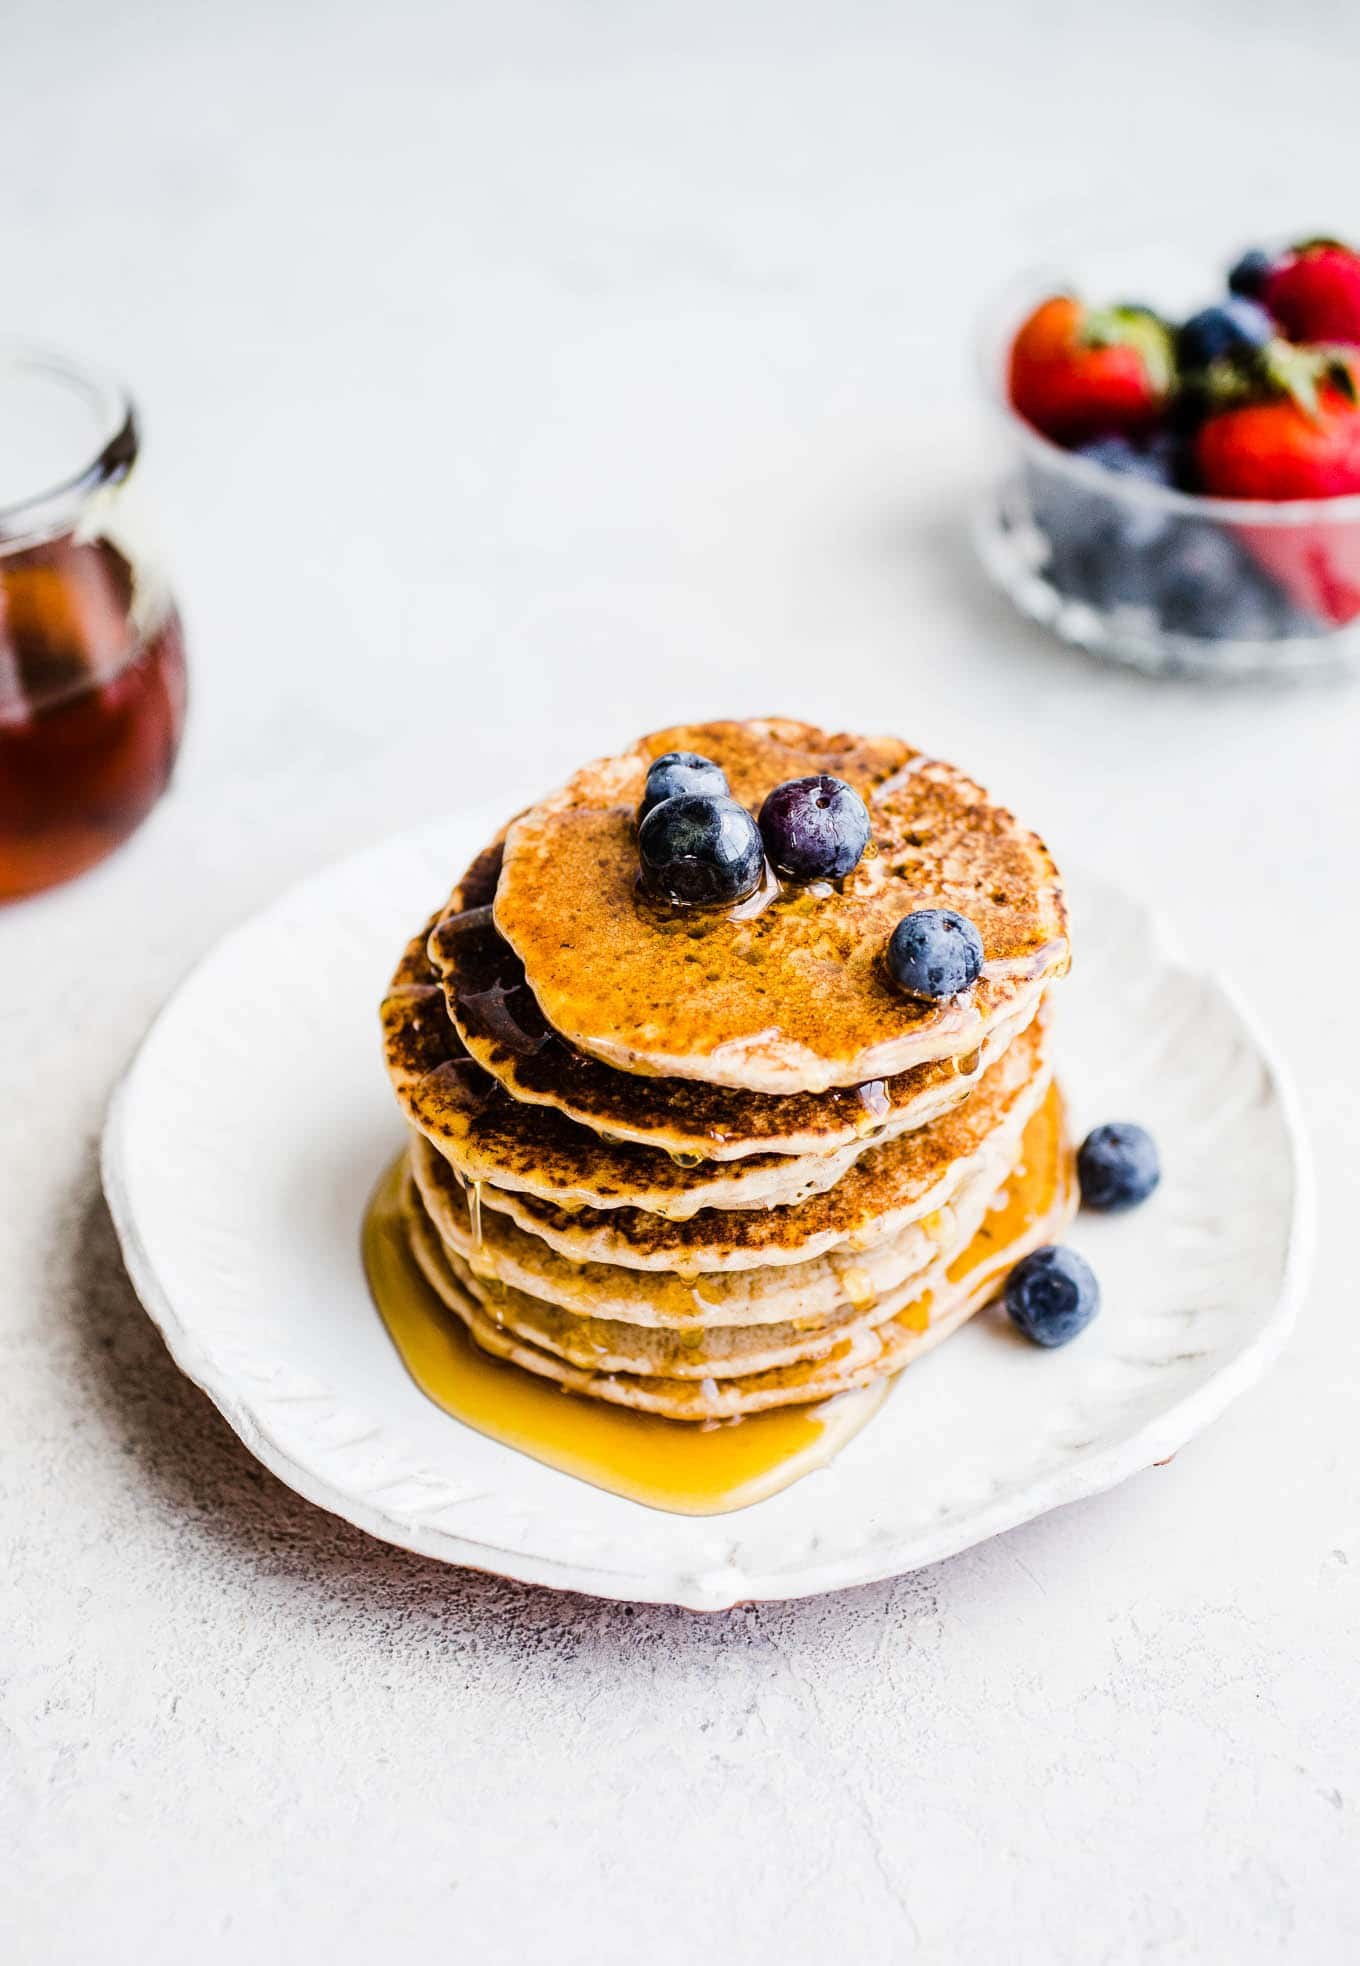 Buckwheat pancakes with syrup